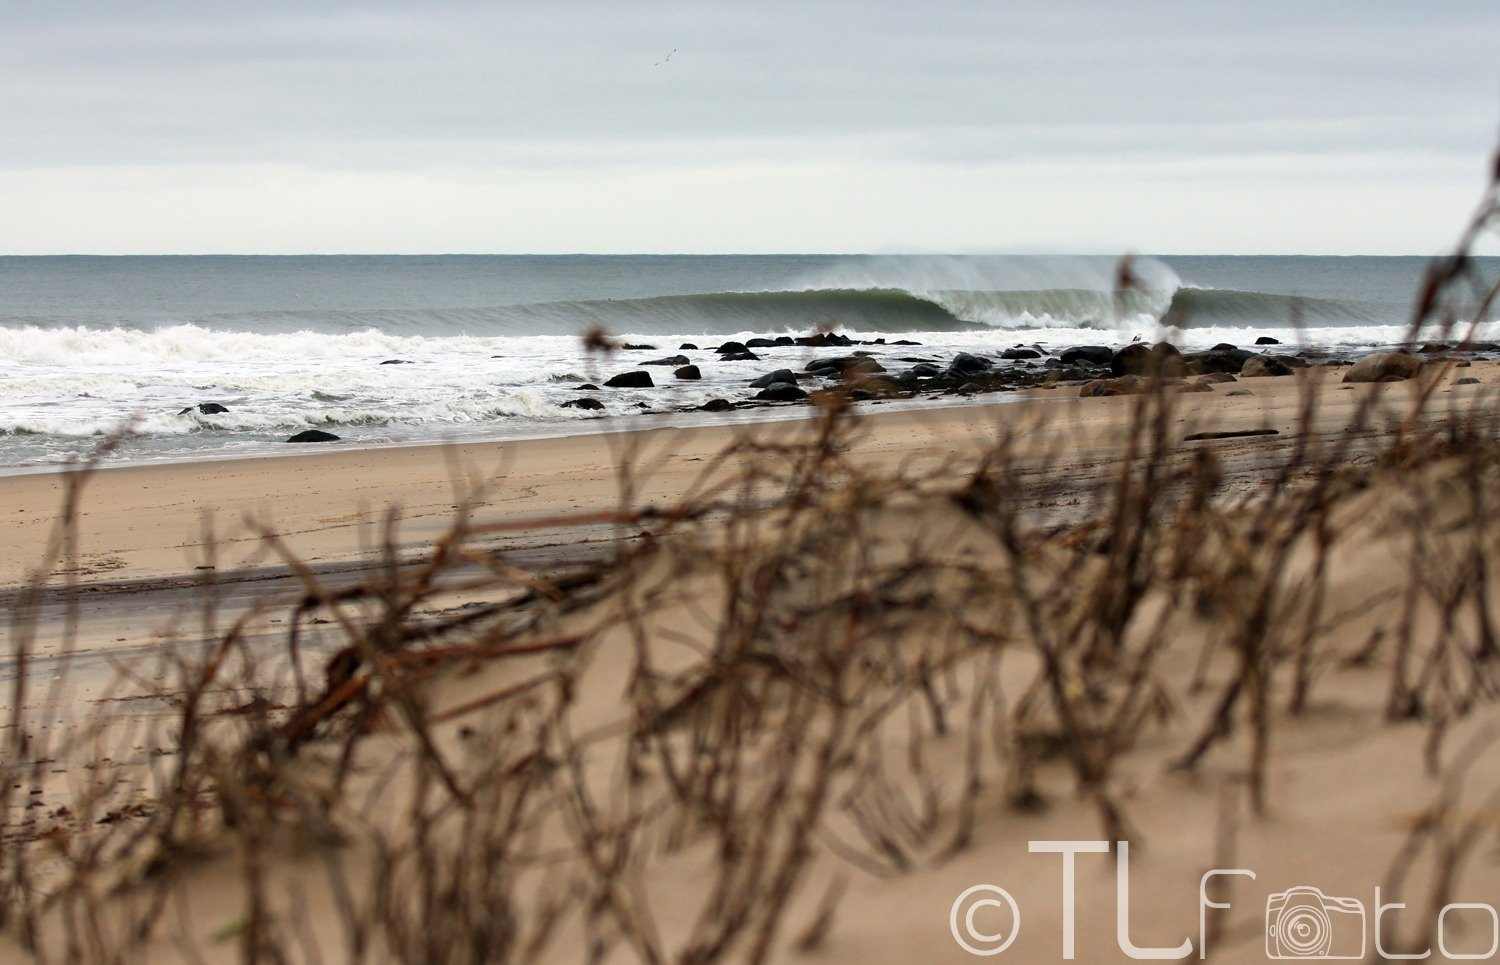 TLfoto's photo of Misquamicut